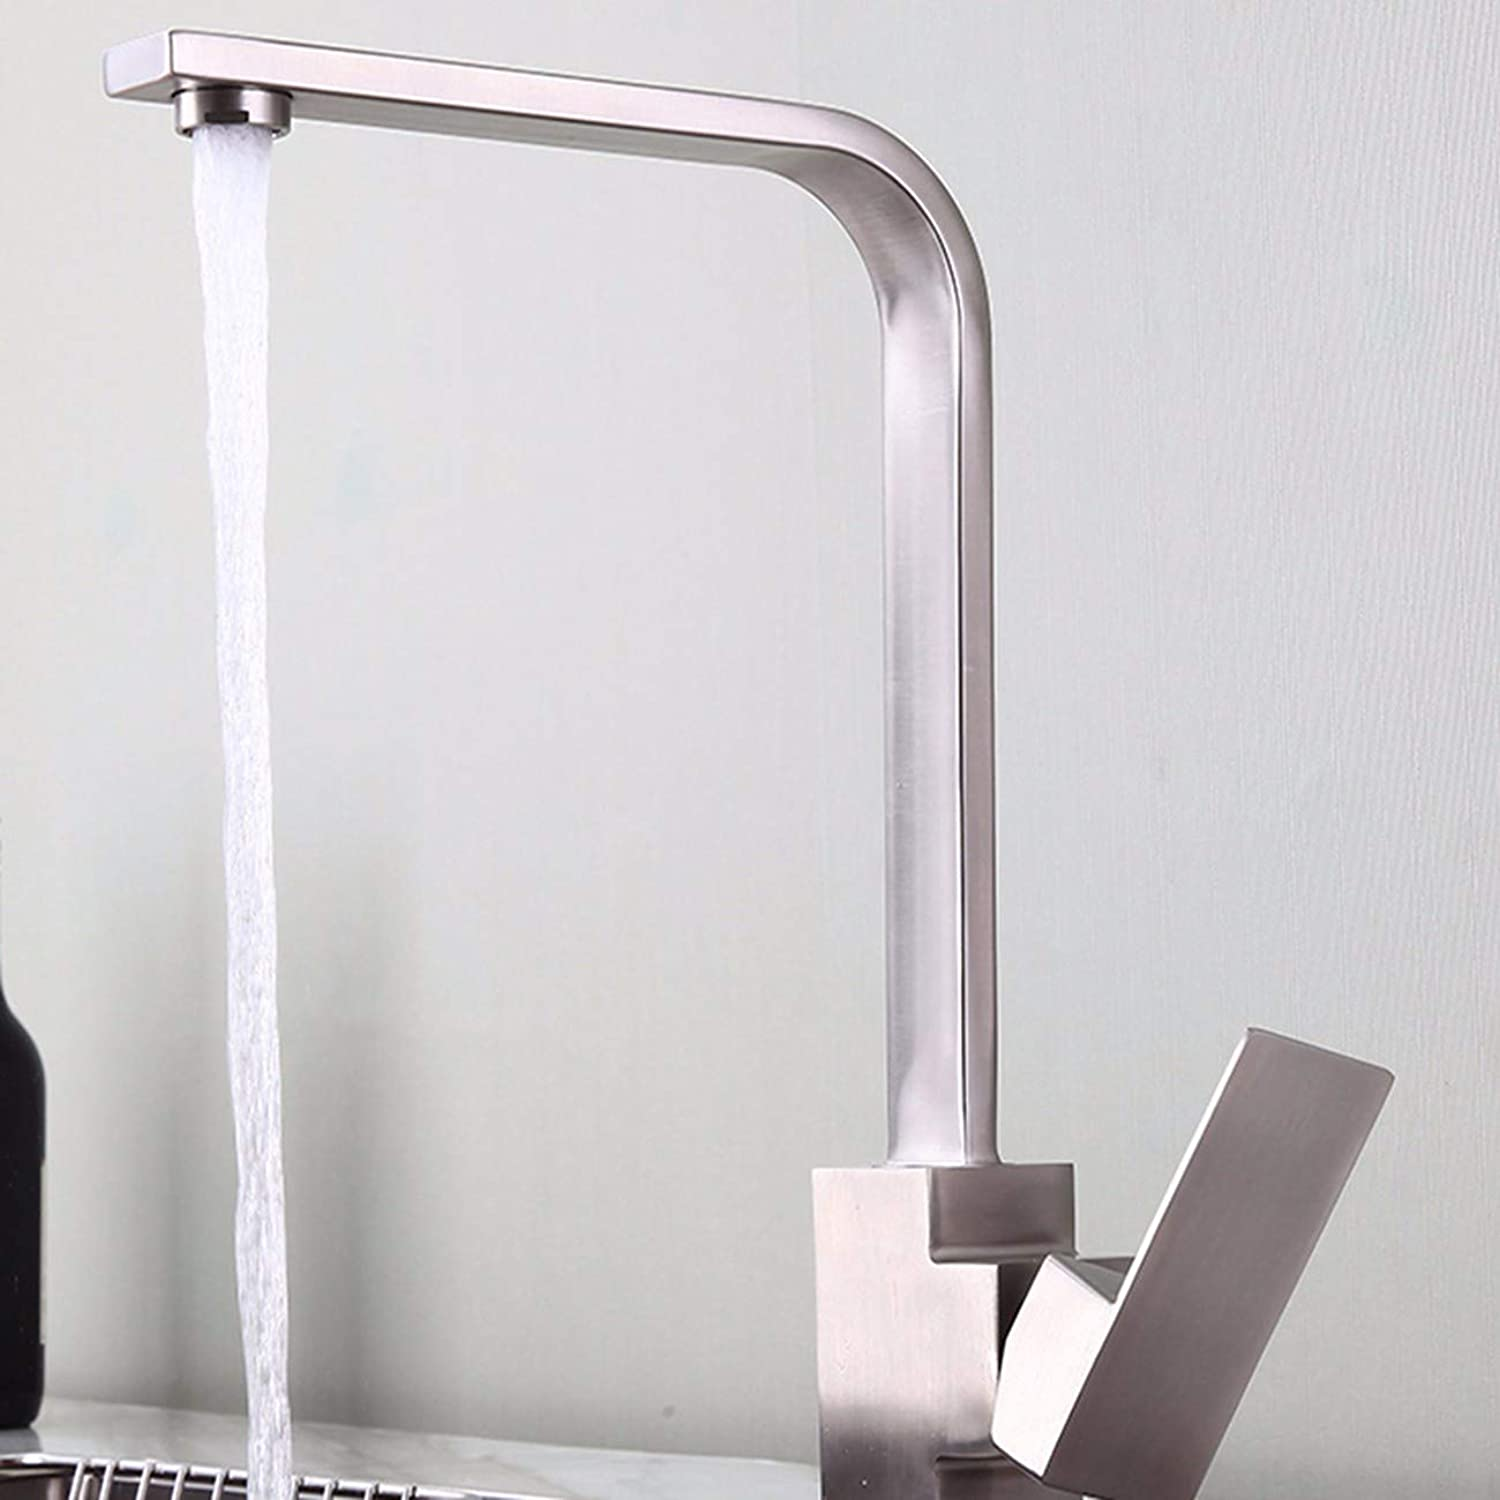 Kitchen tap Stainless Steel Kitchen Faucet, Hot And Cold Wash Basin, Sink, Sink Bowl, Tap Swivel,B